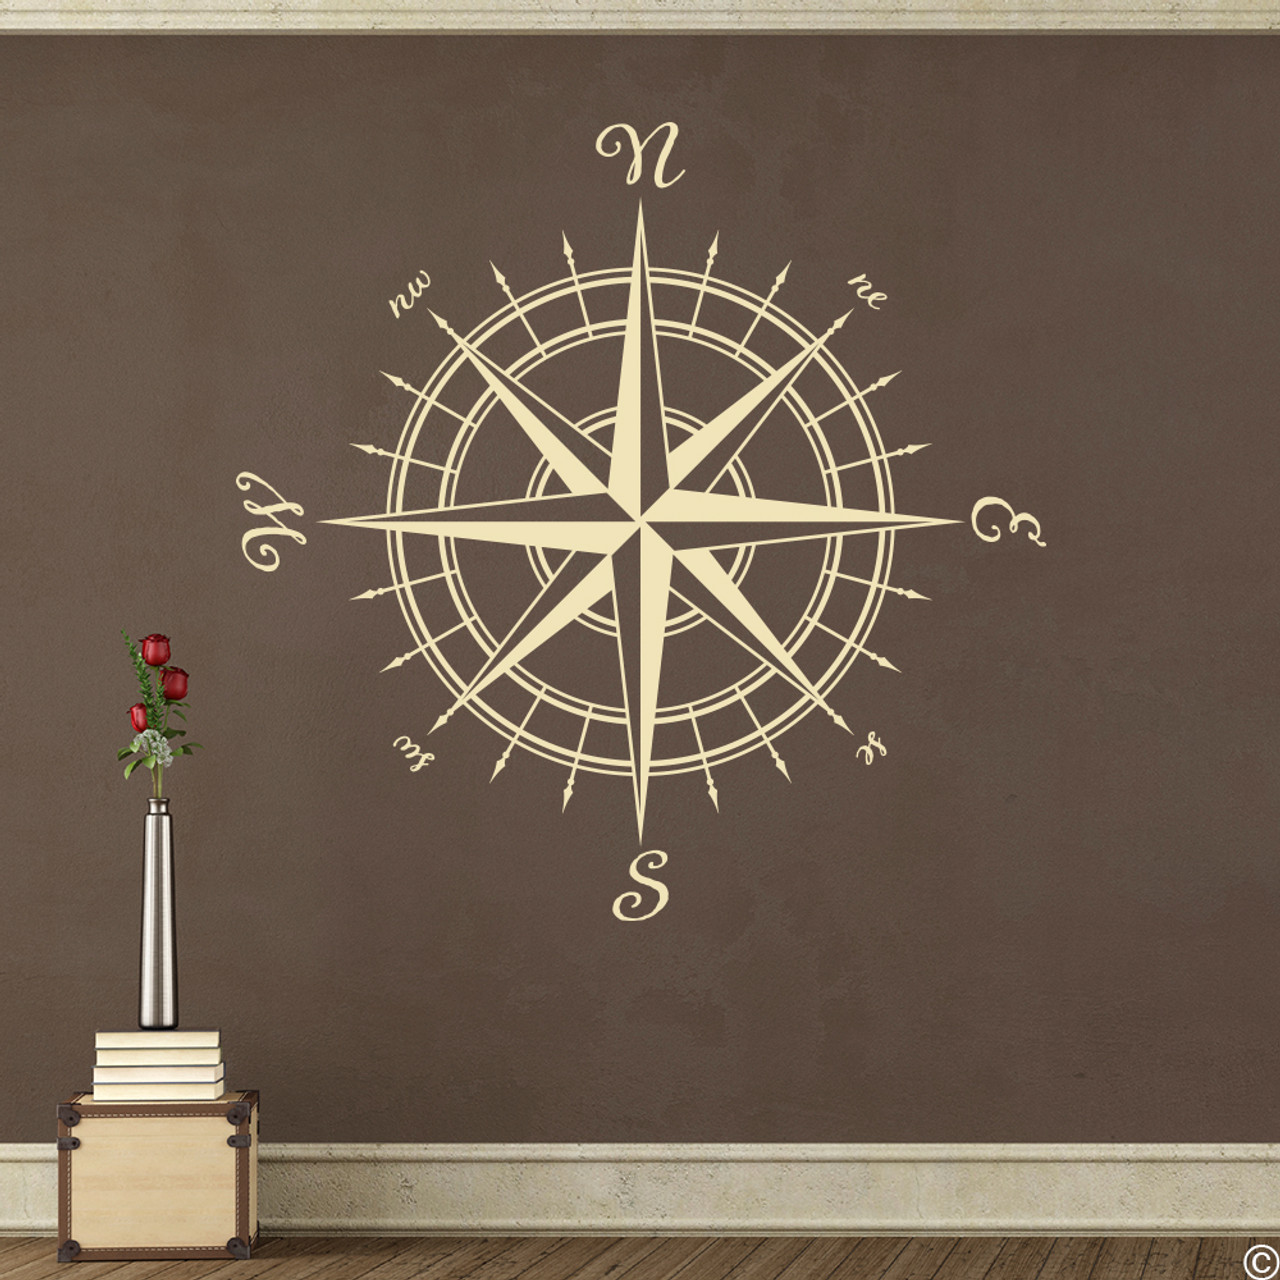 The Erasmus compass rose vinyl wall or ceiling decal in beige